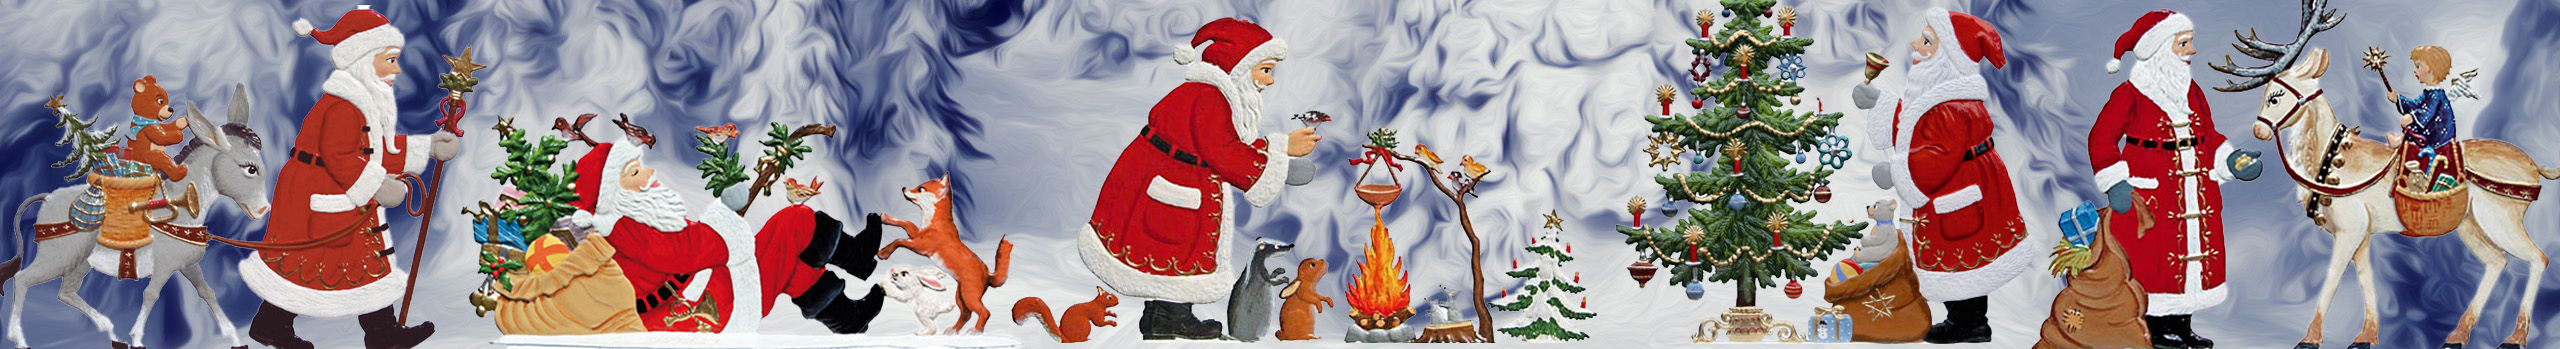 Wilhelm Schwizer Santa Collection image